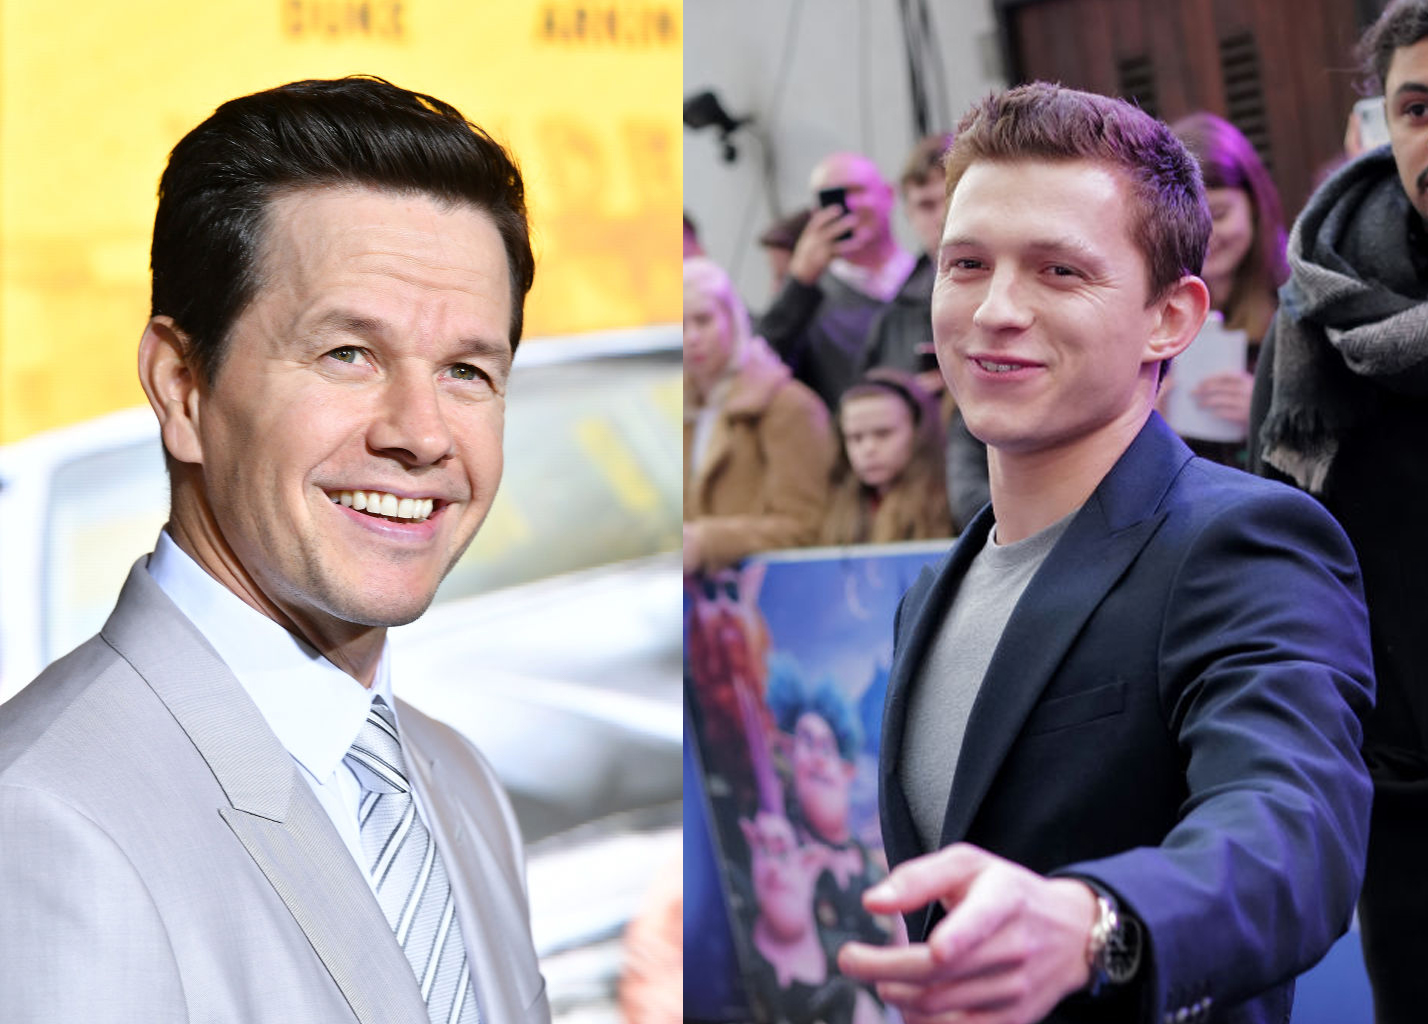 New Uncharted Movie Features Mark Wahlberg with His New Look That Drives Fans Crazy